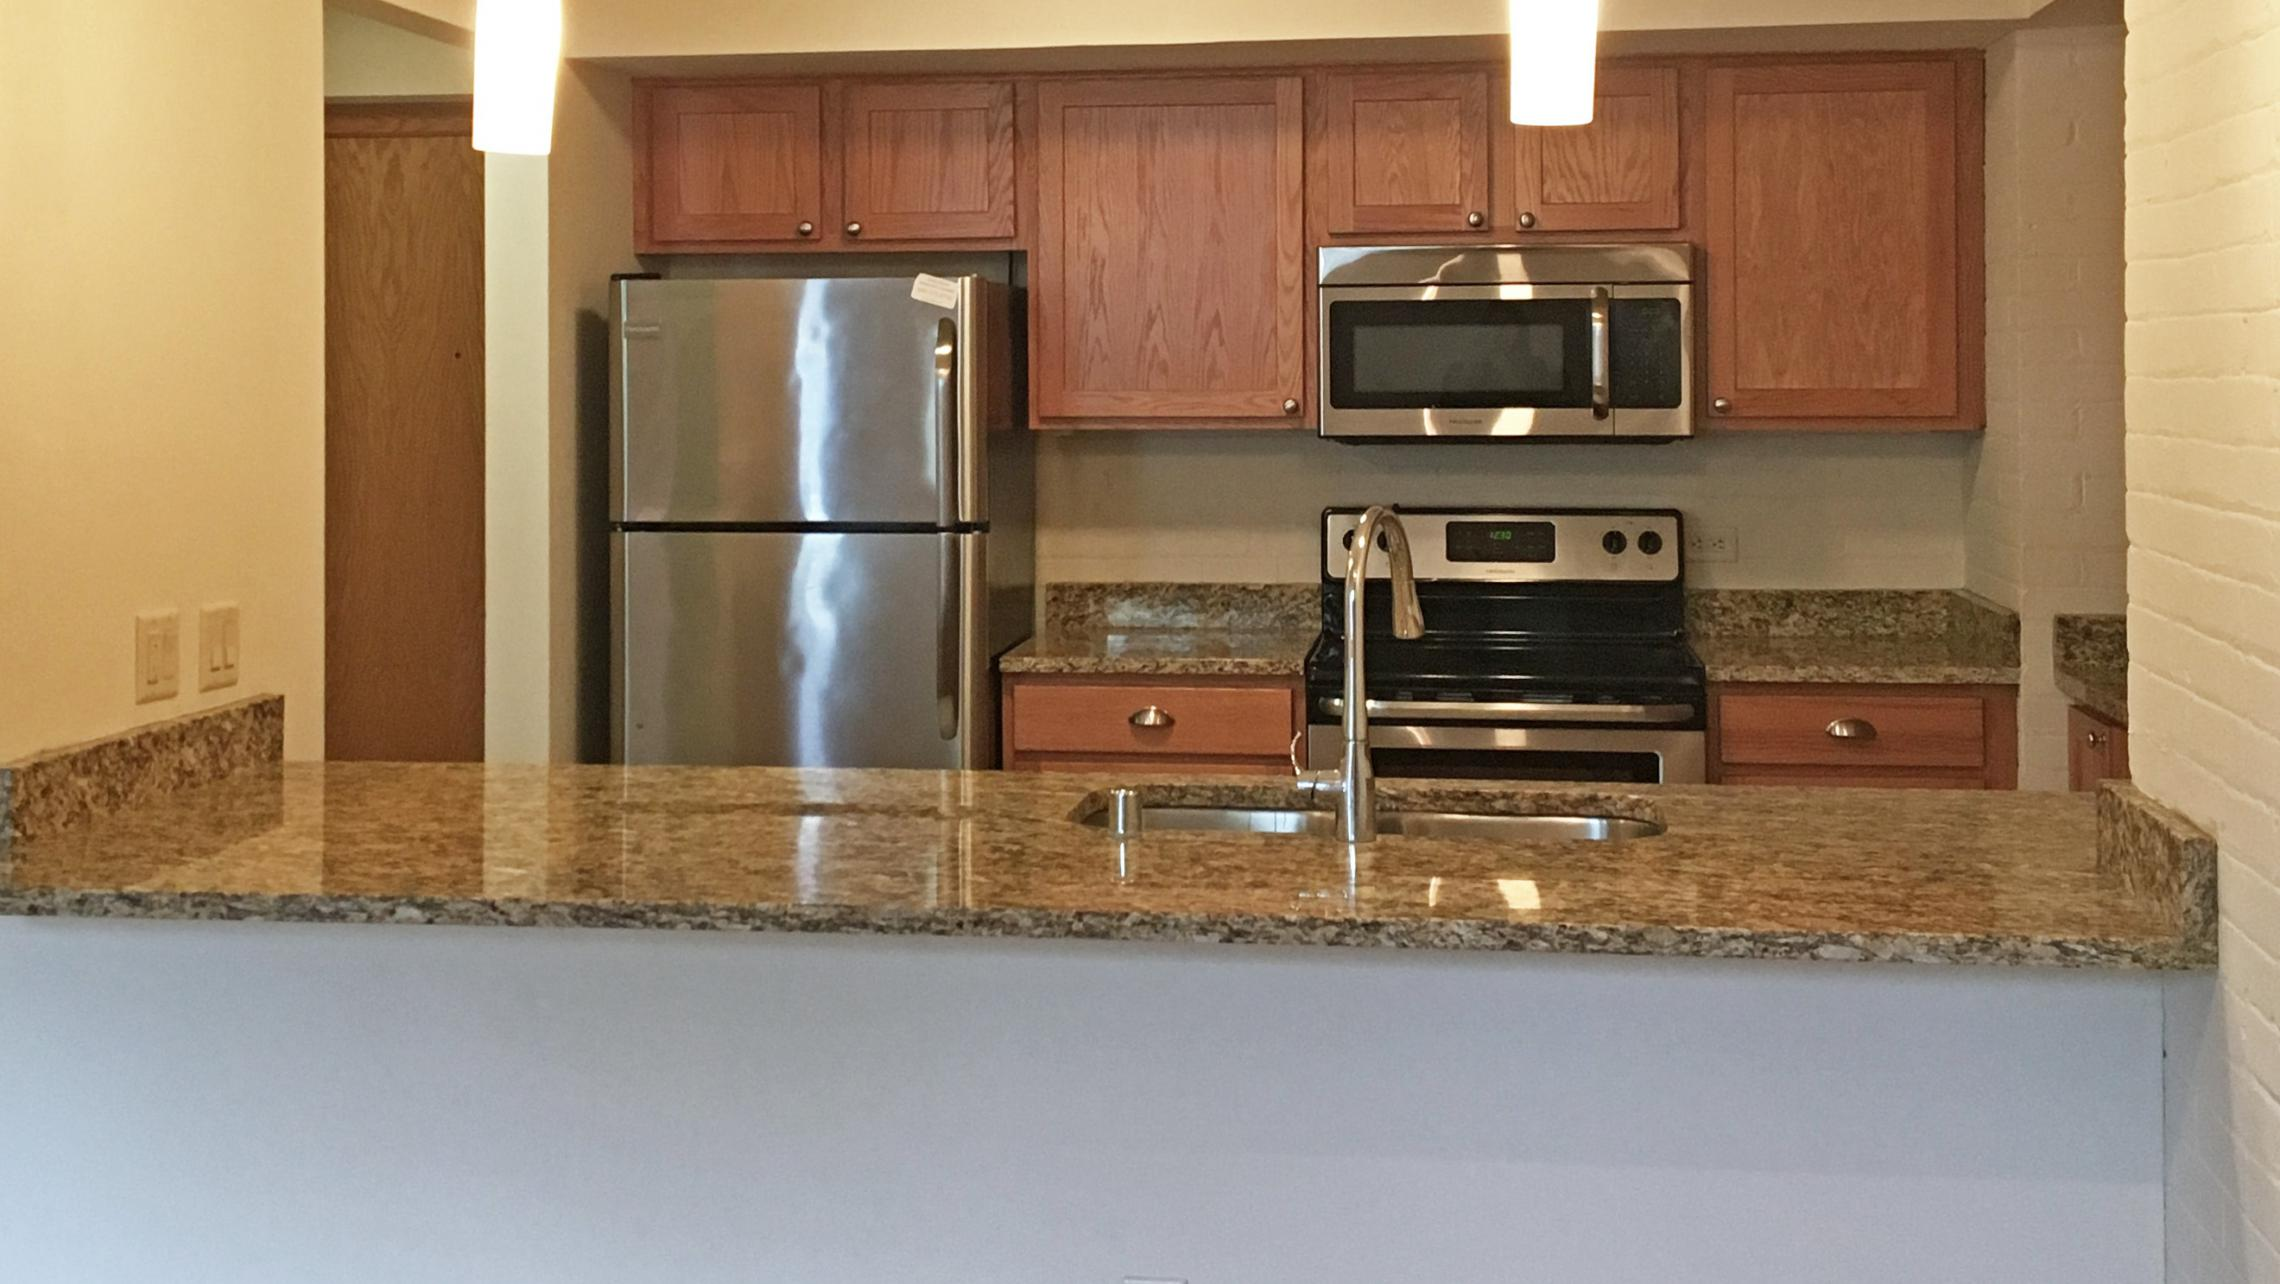 ULI Lincoln School Apartment 207 - Kitchen with Stainless Steel Appliances